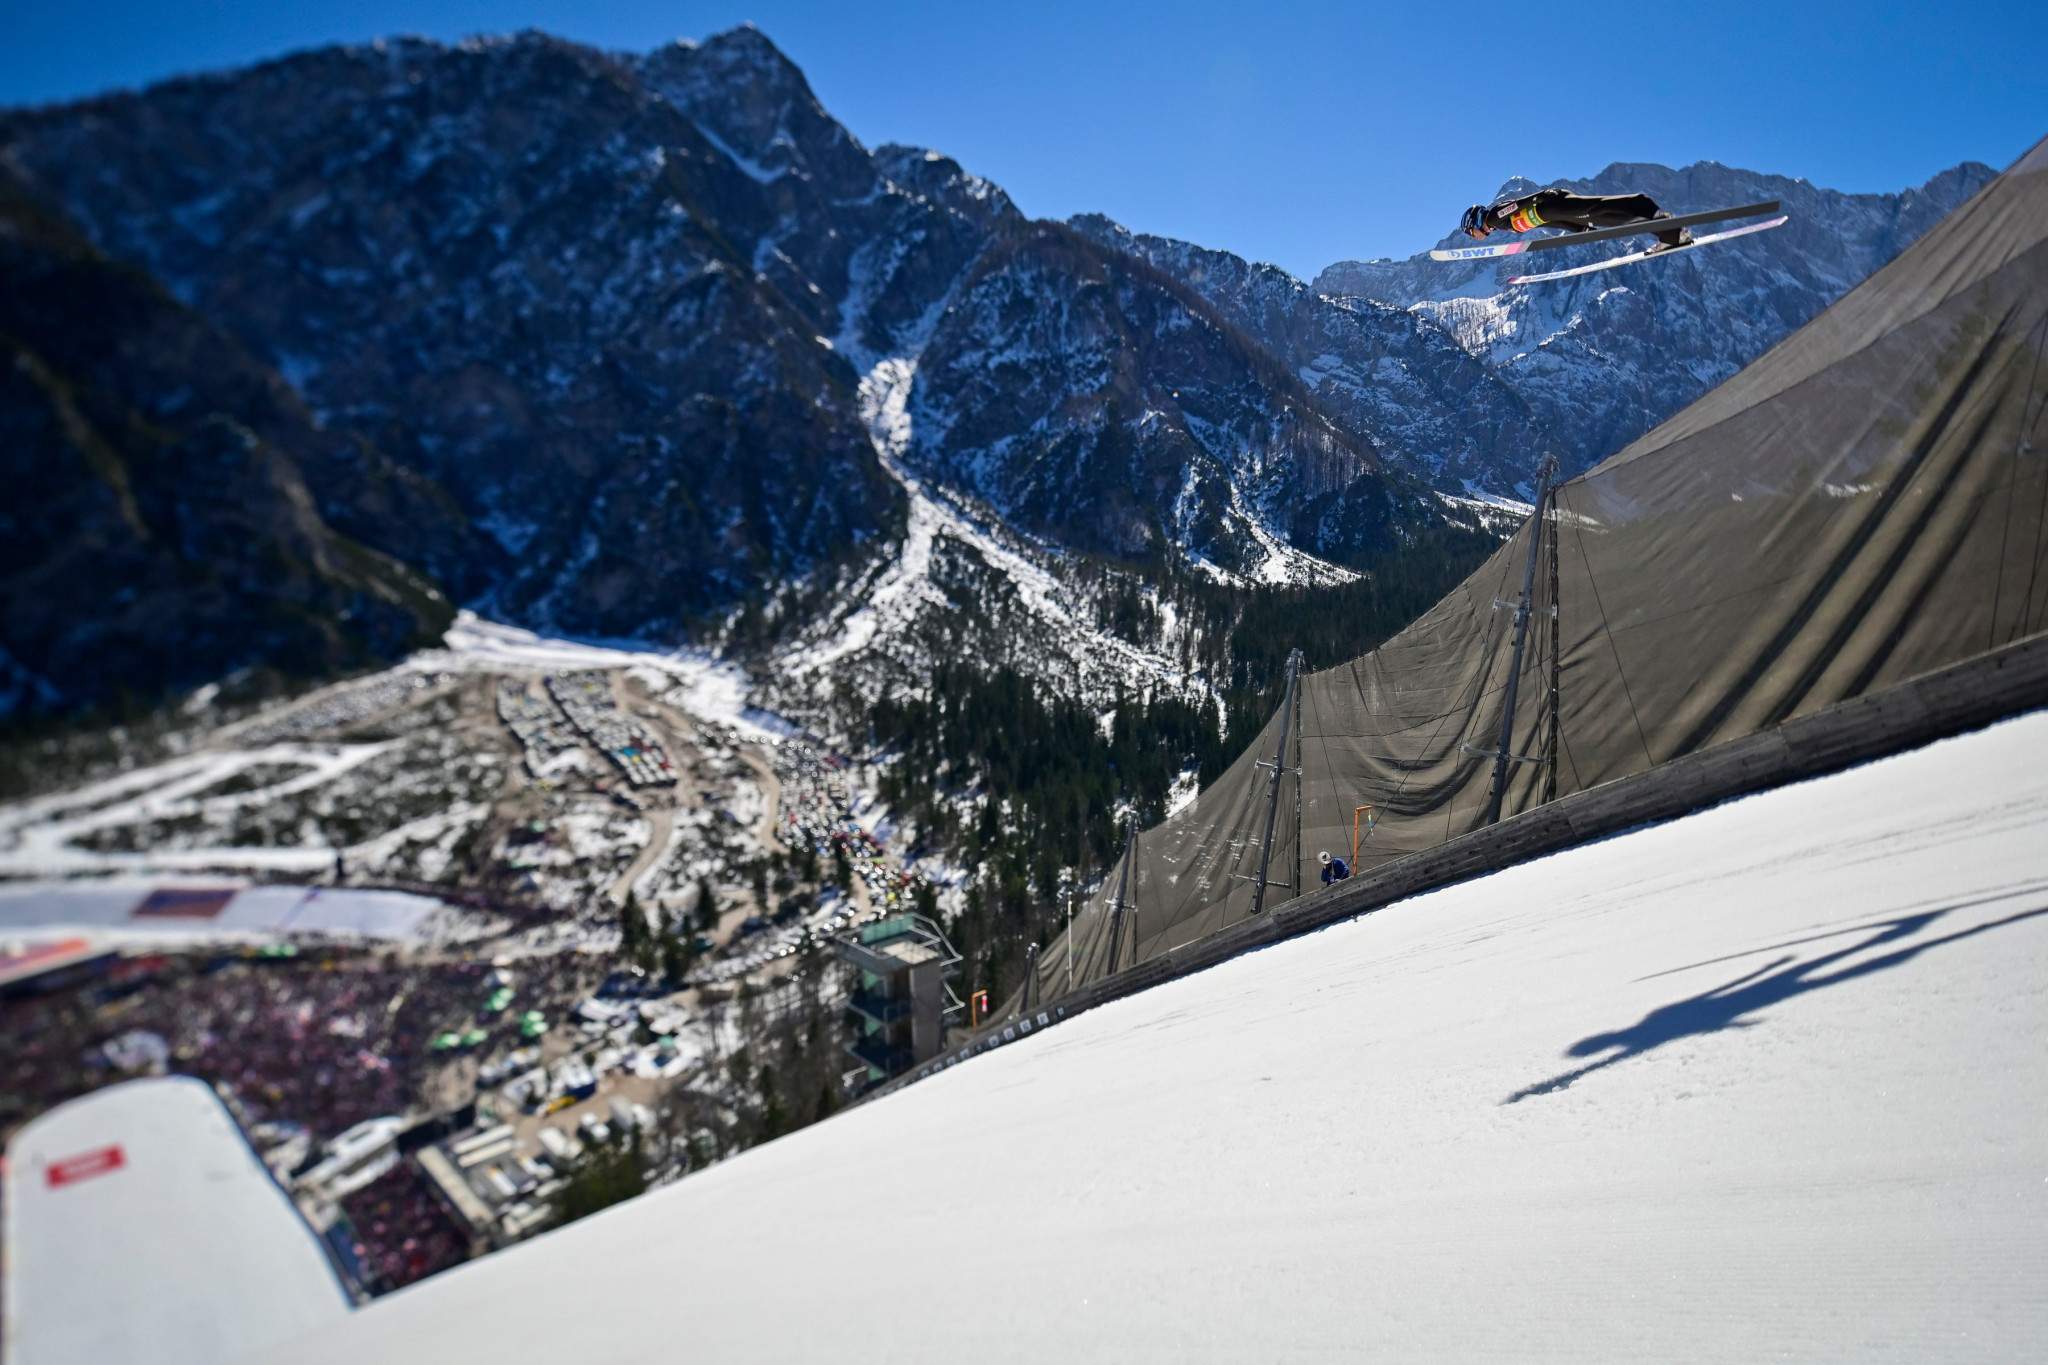 FIS Council receives positive progress reports on upcoming World Championships